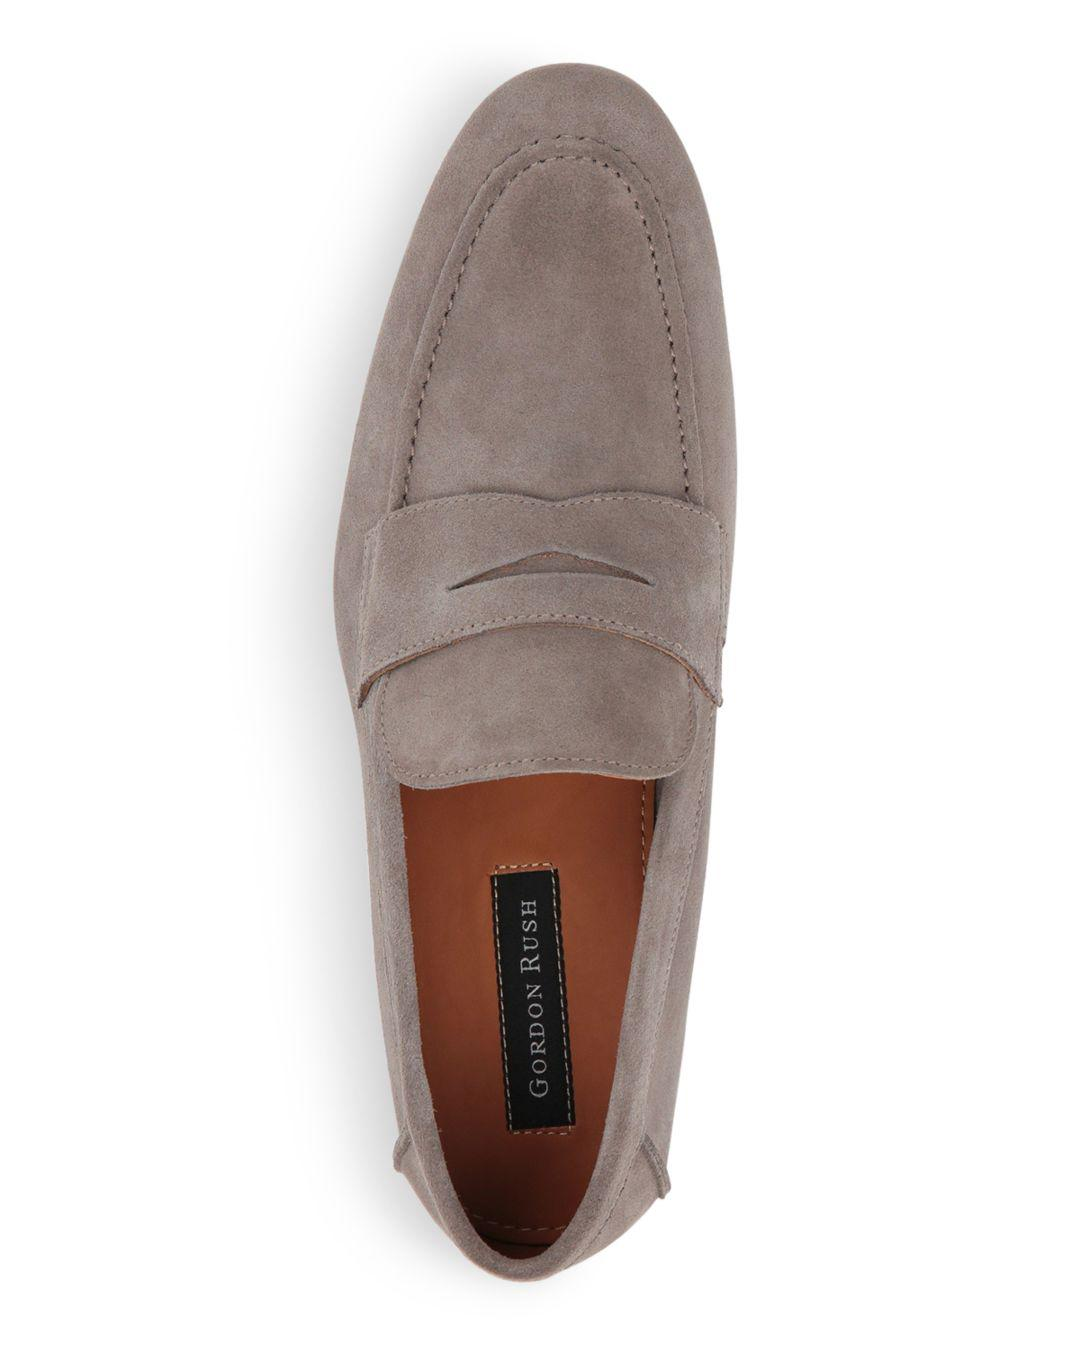 90b26bc0c17 Lyst - Gordon Rush Men s Wilfred Suede Apron Toe Penny Loafers in ...